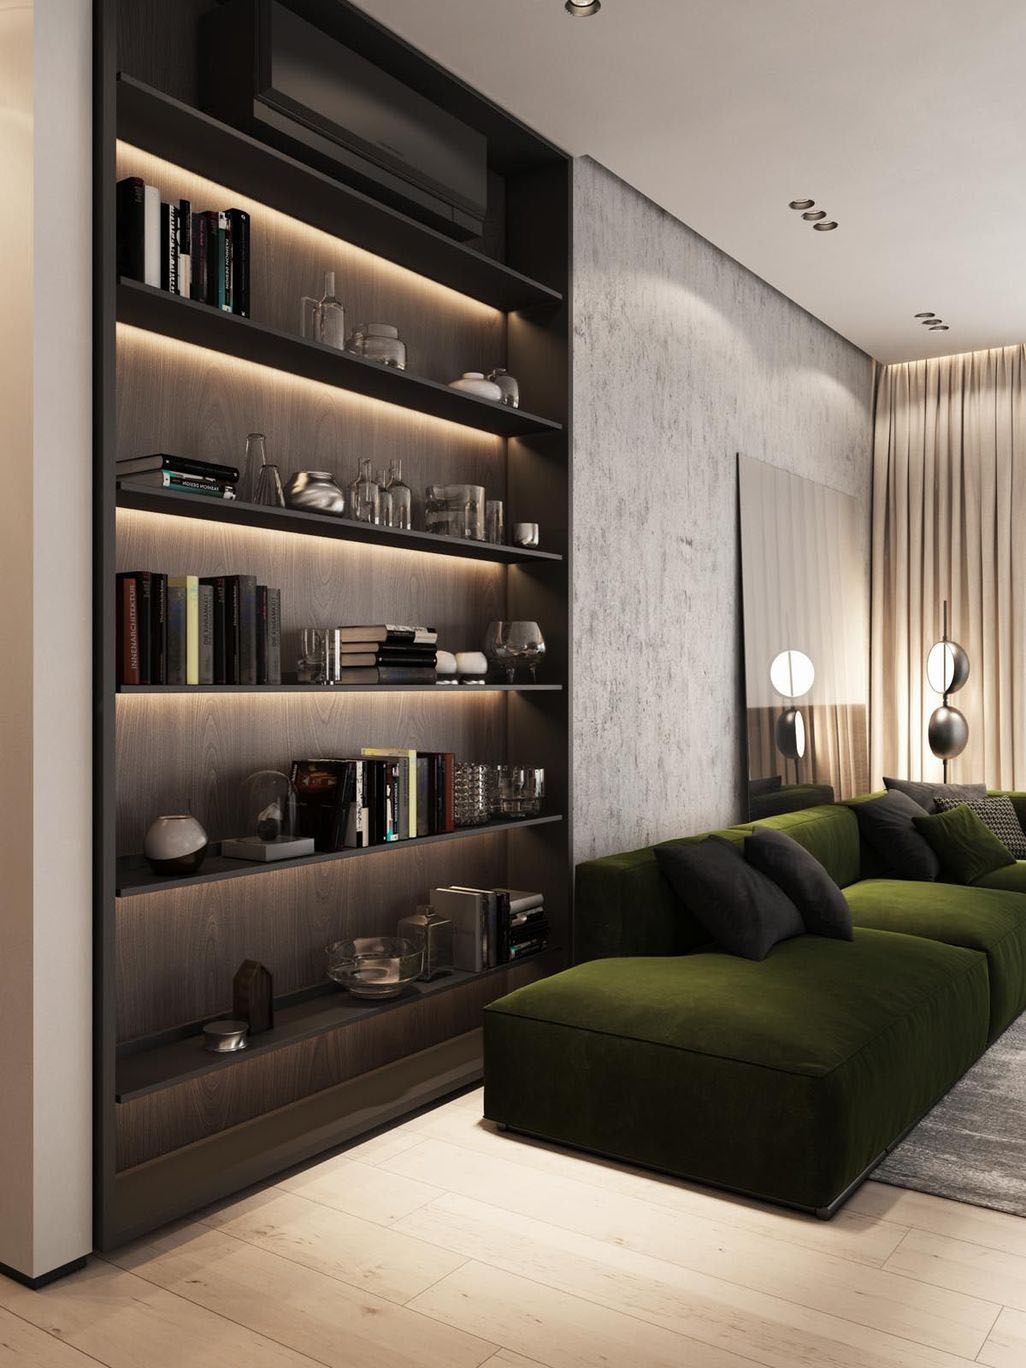 wonderful empty apartment living room | Decorator Tricks for Small Living Rooms and More ...